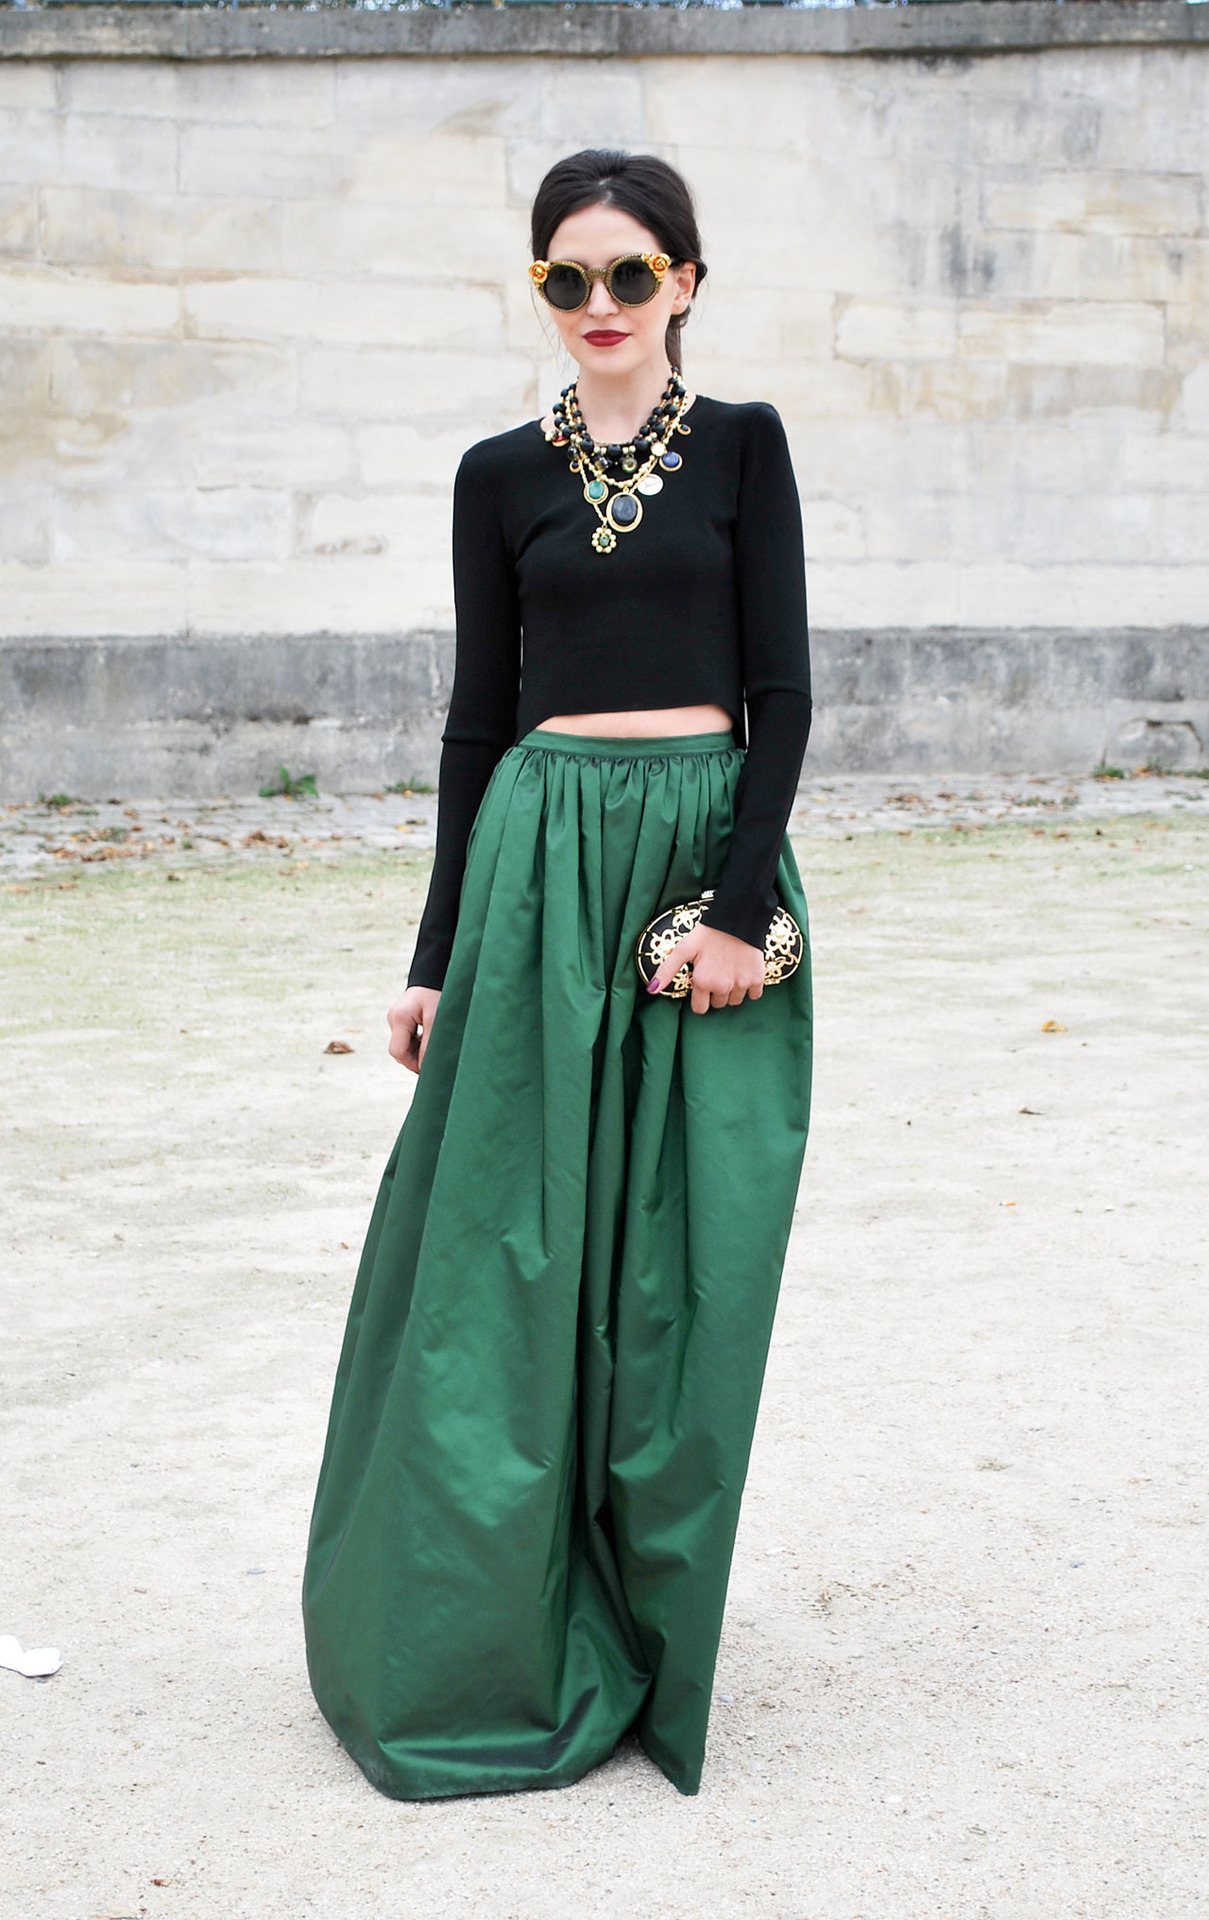 dress - Skirt Maxi outfits tumblr pictures video